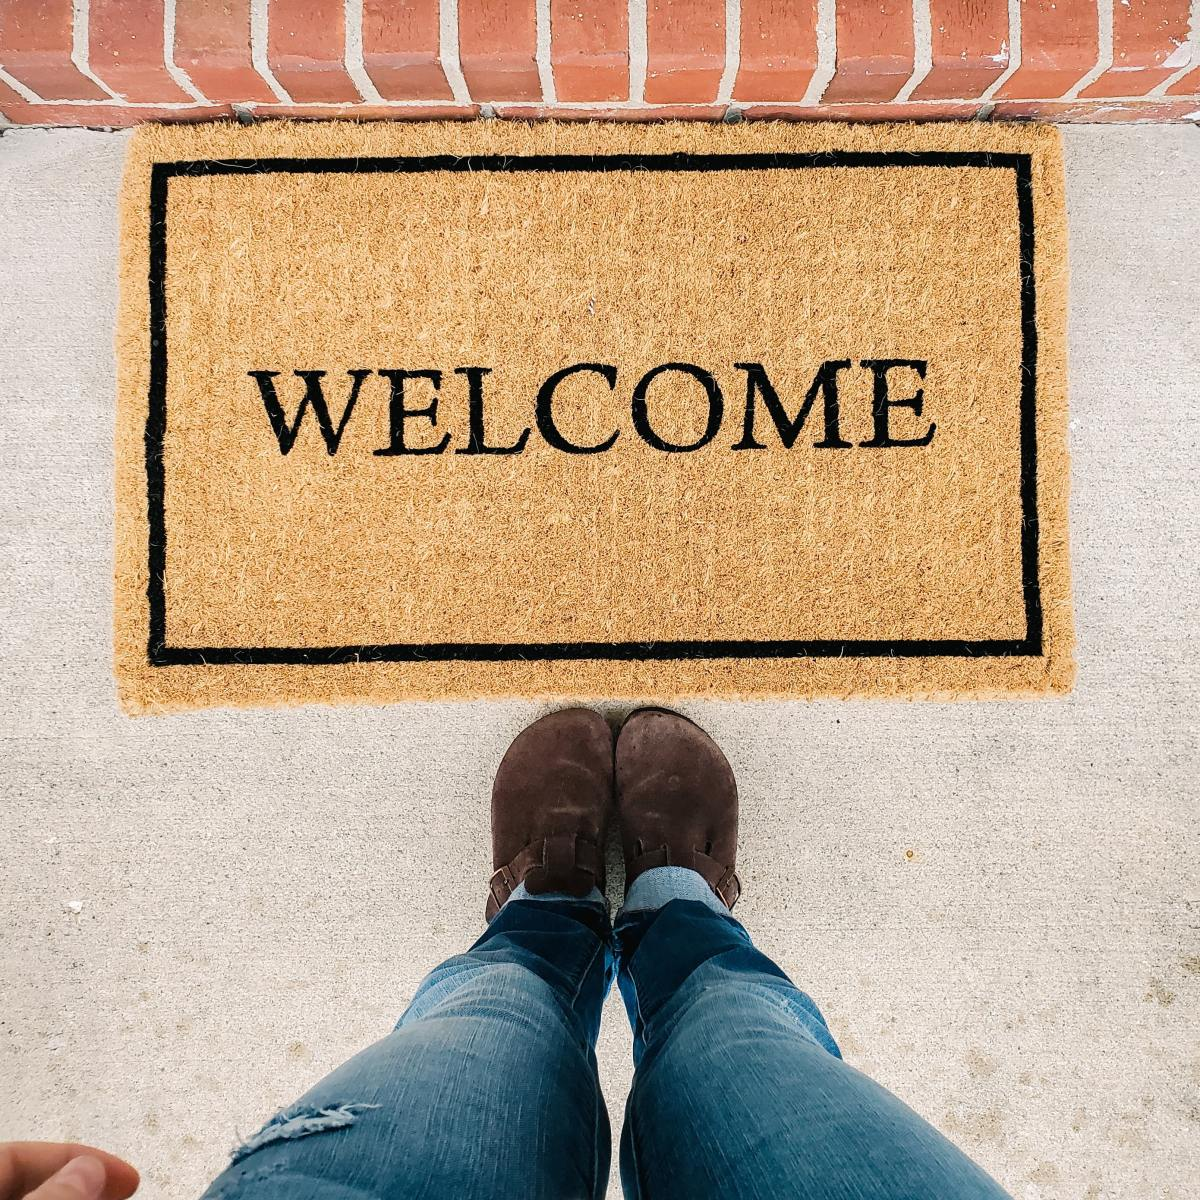 How to Be a Good Houseguest: 7 Tips for Getting Invited Back